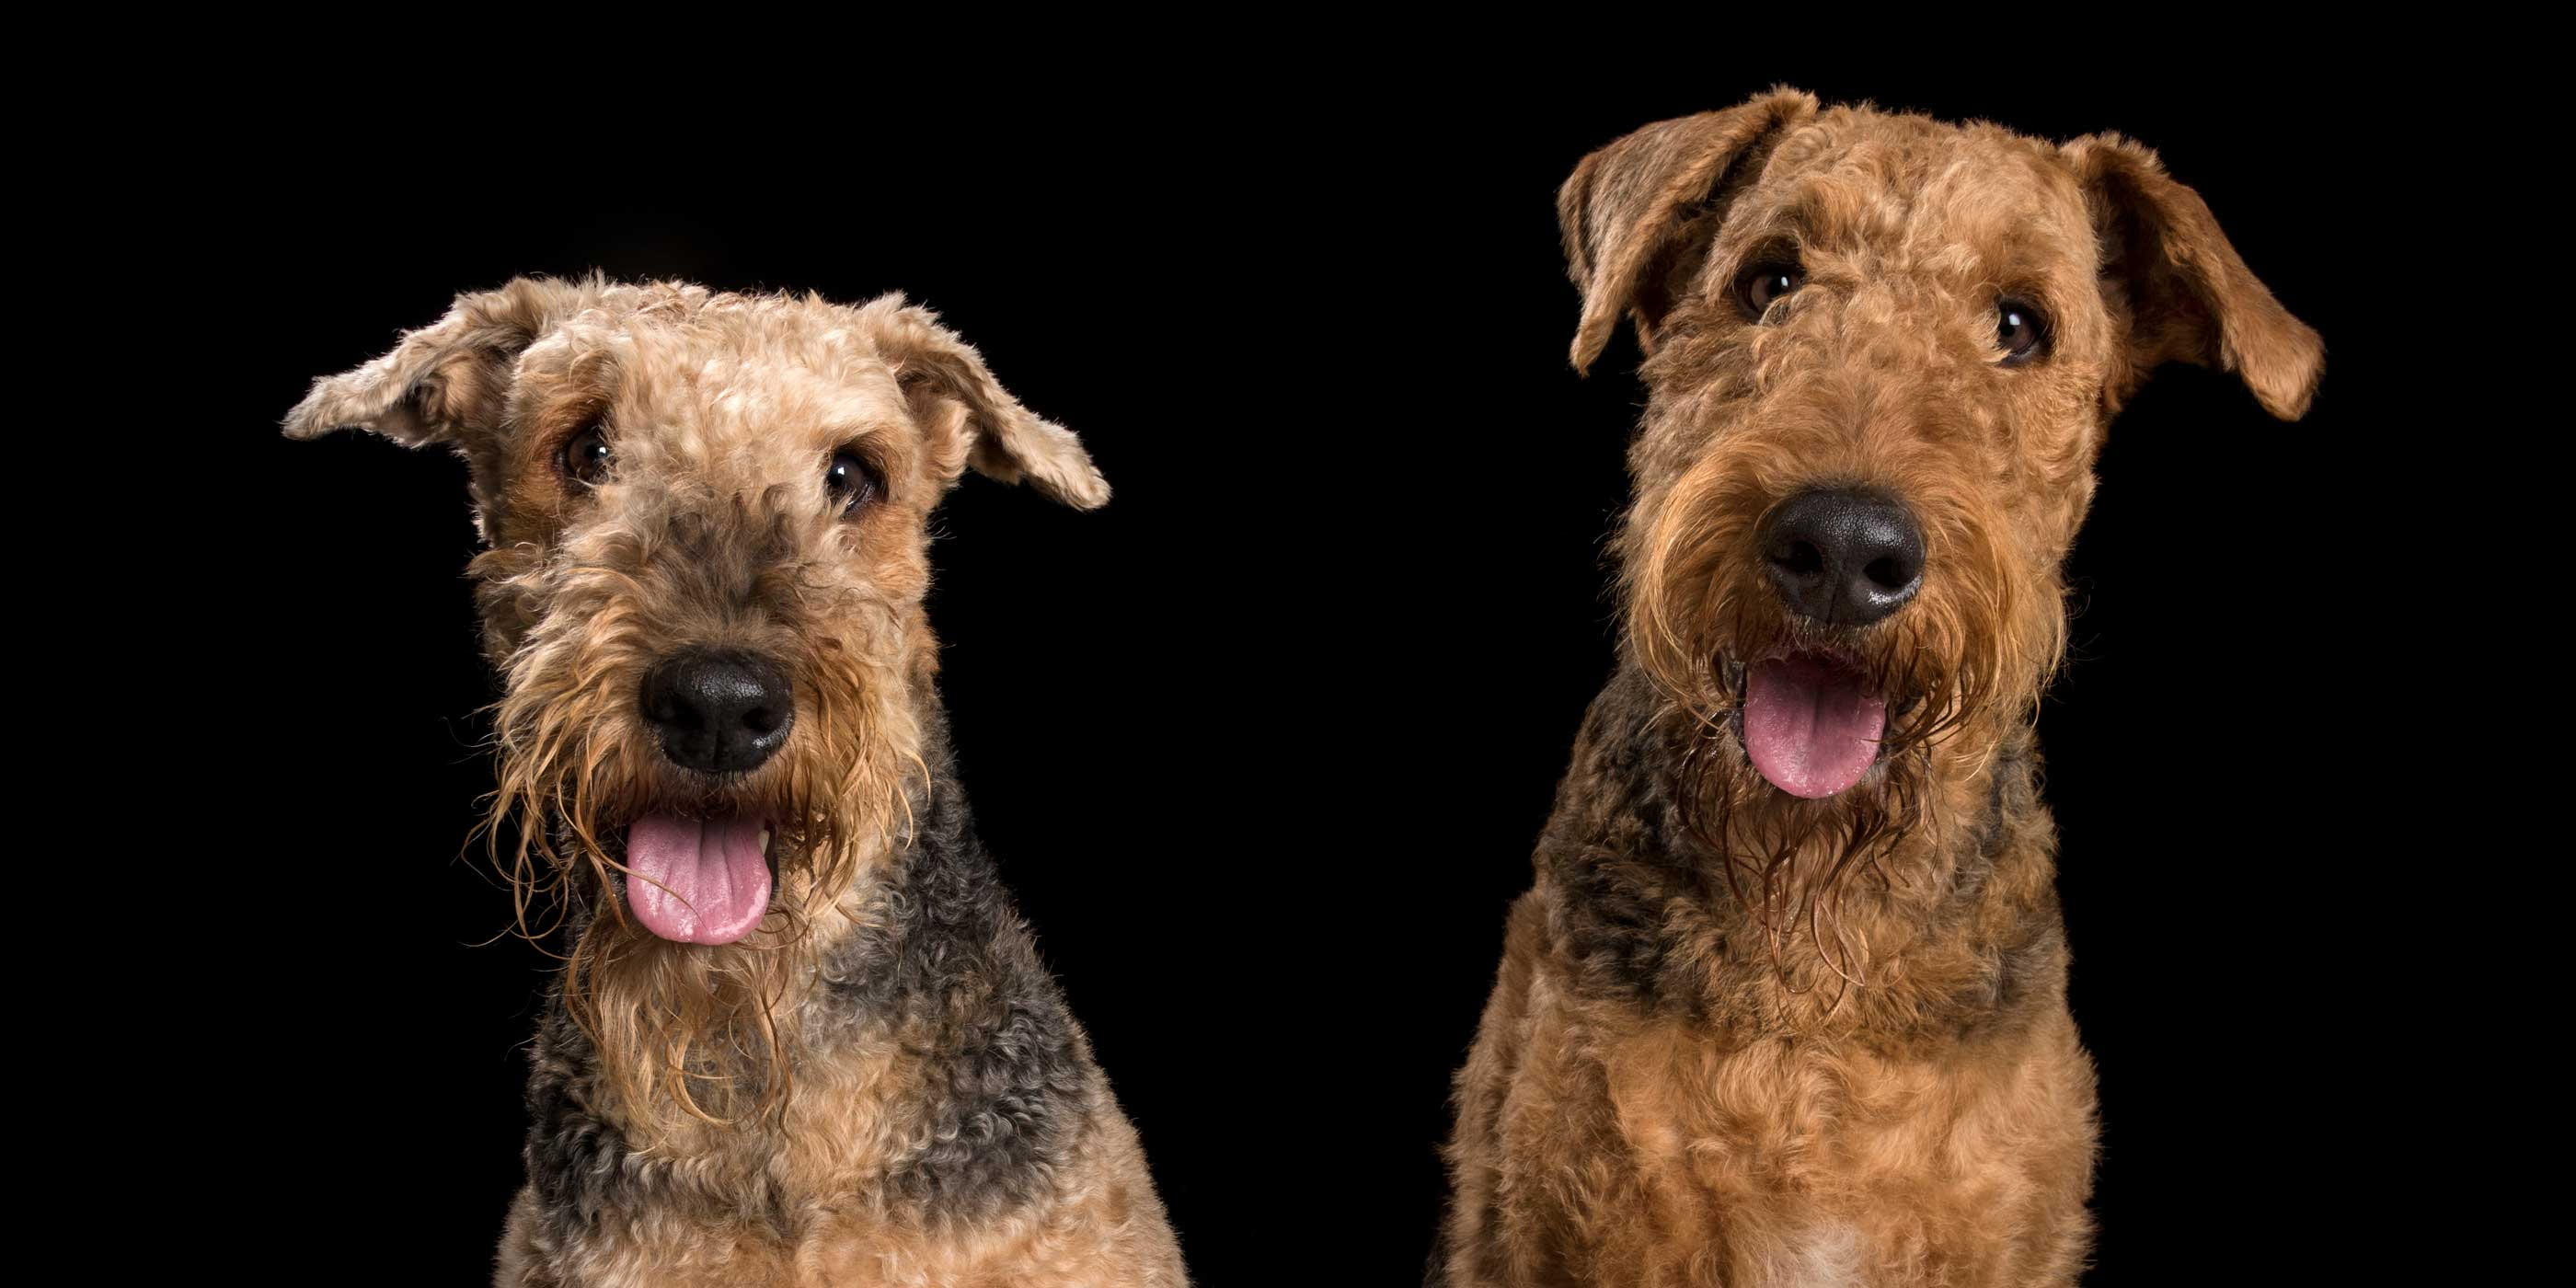 pink tonged pair of airedale dogs